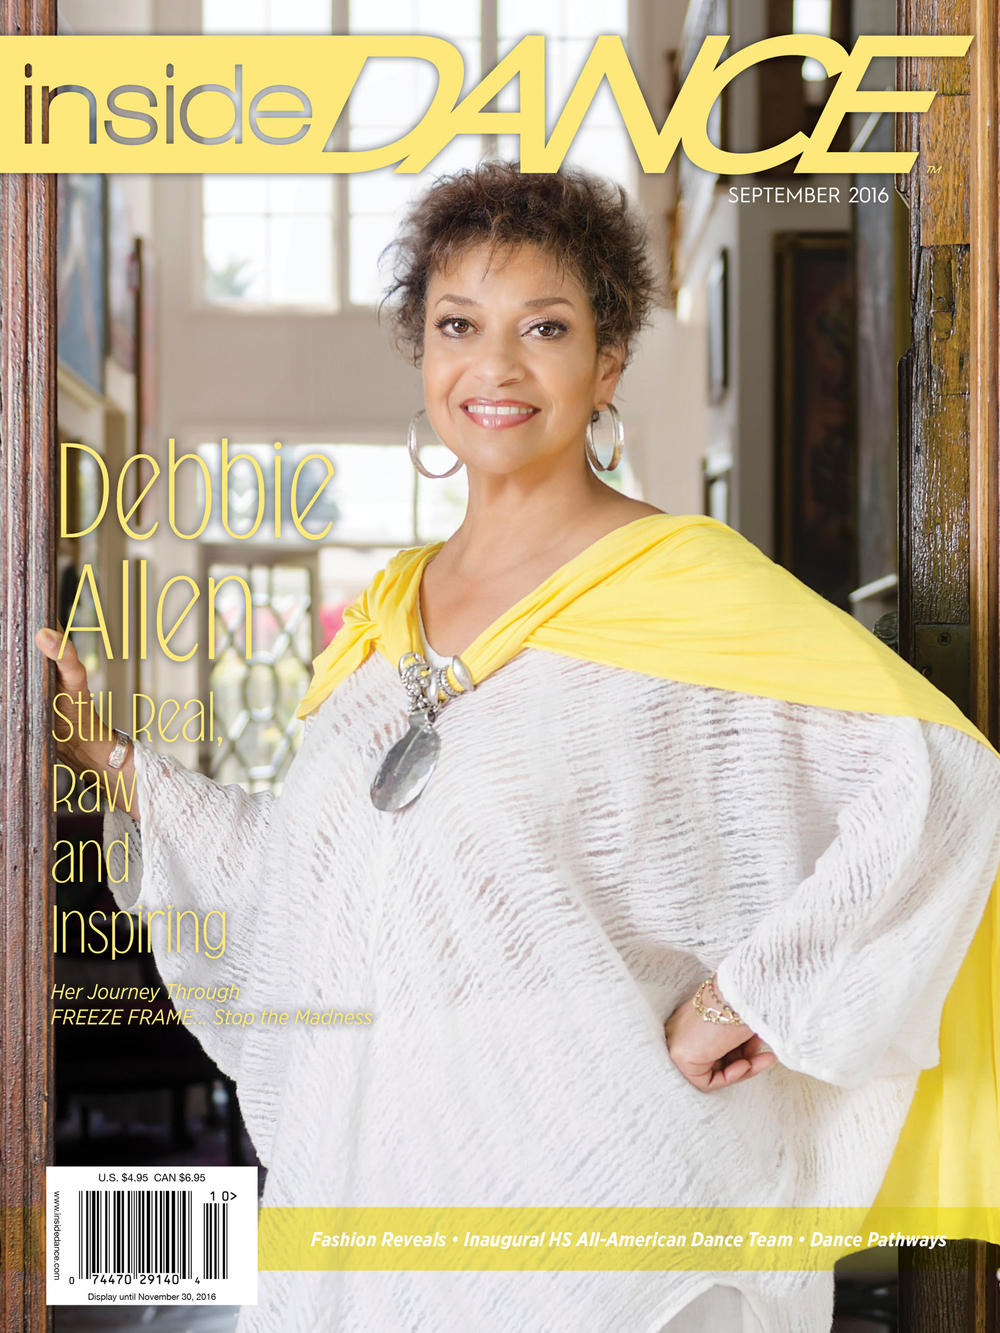 Debbie Allen photographed for Inside Dance Magazine